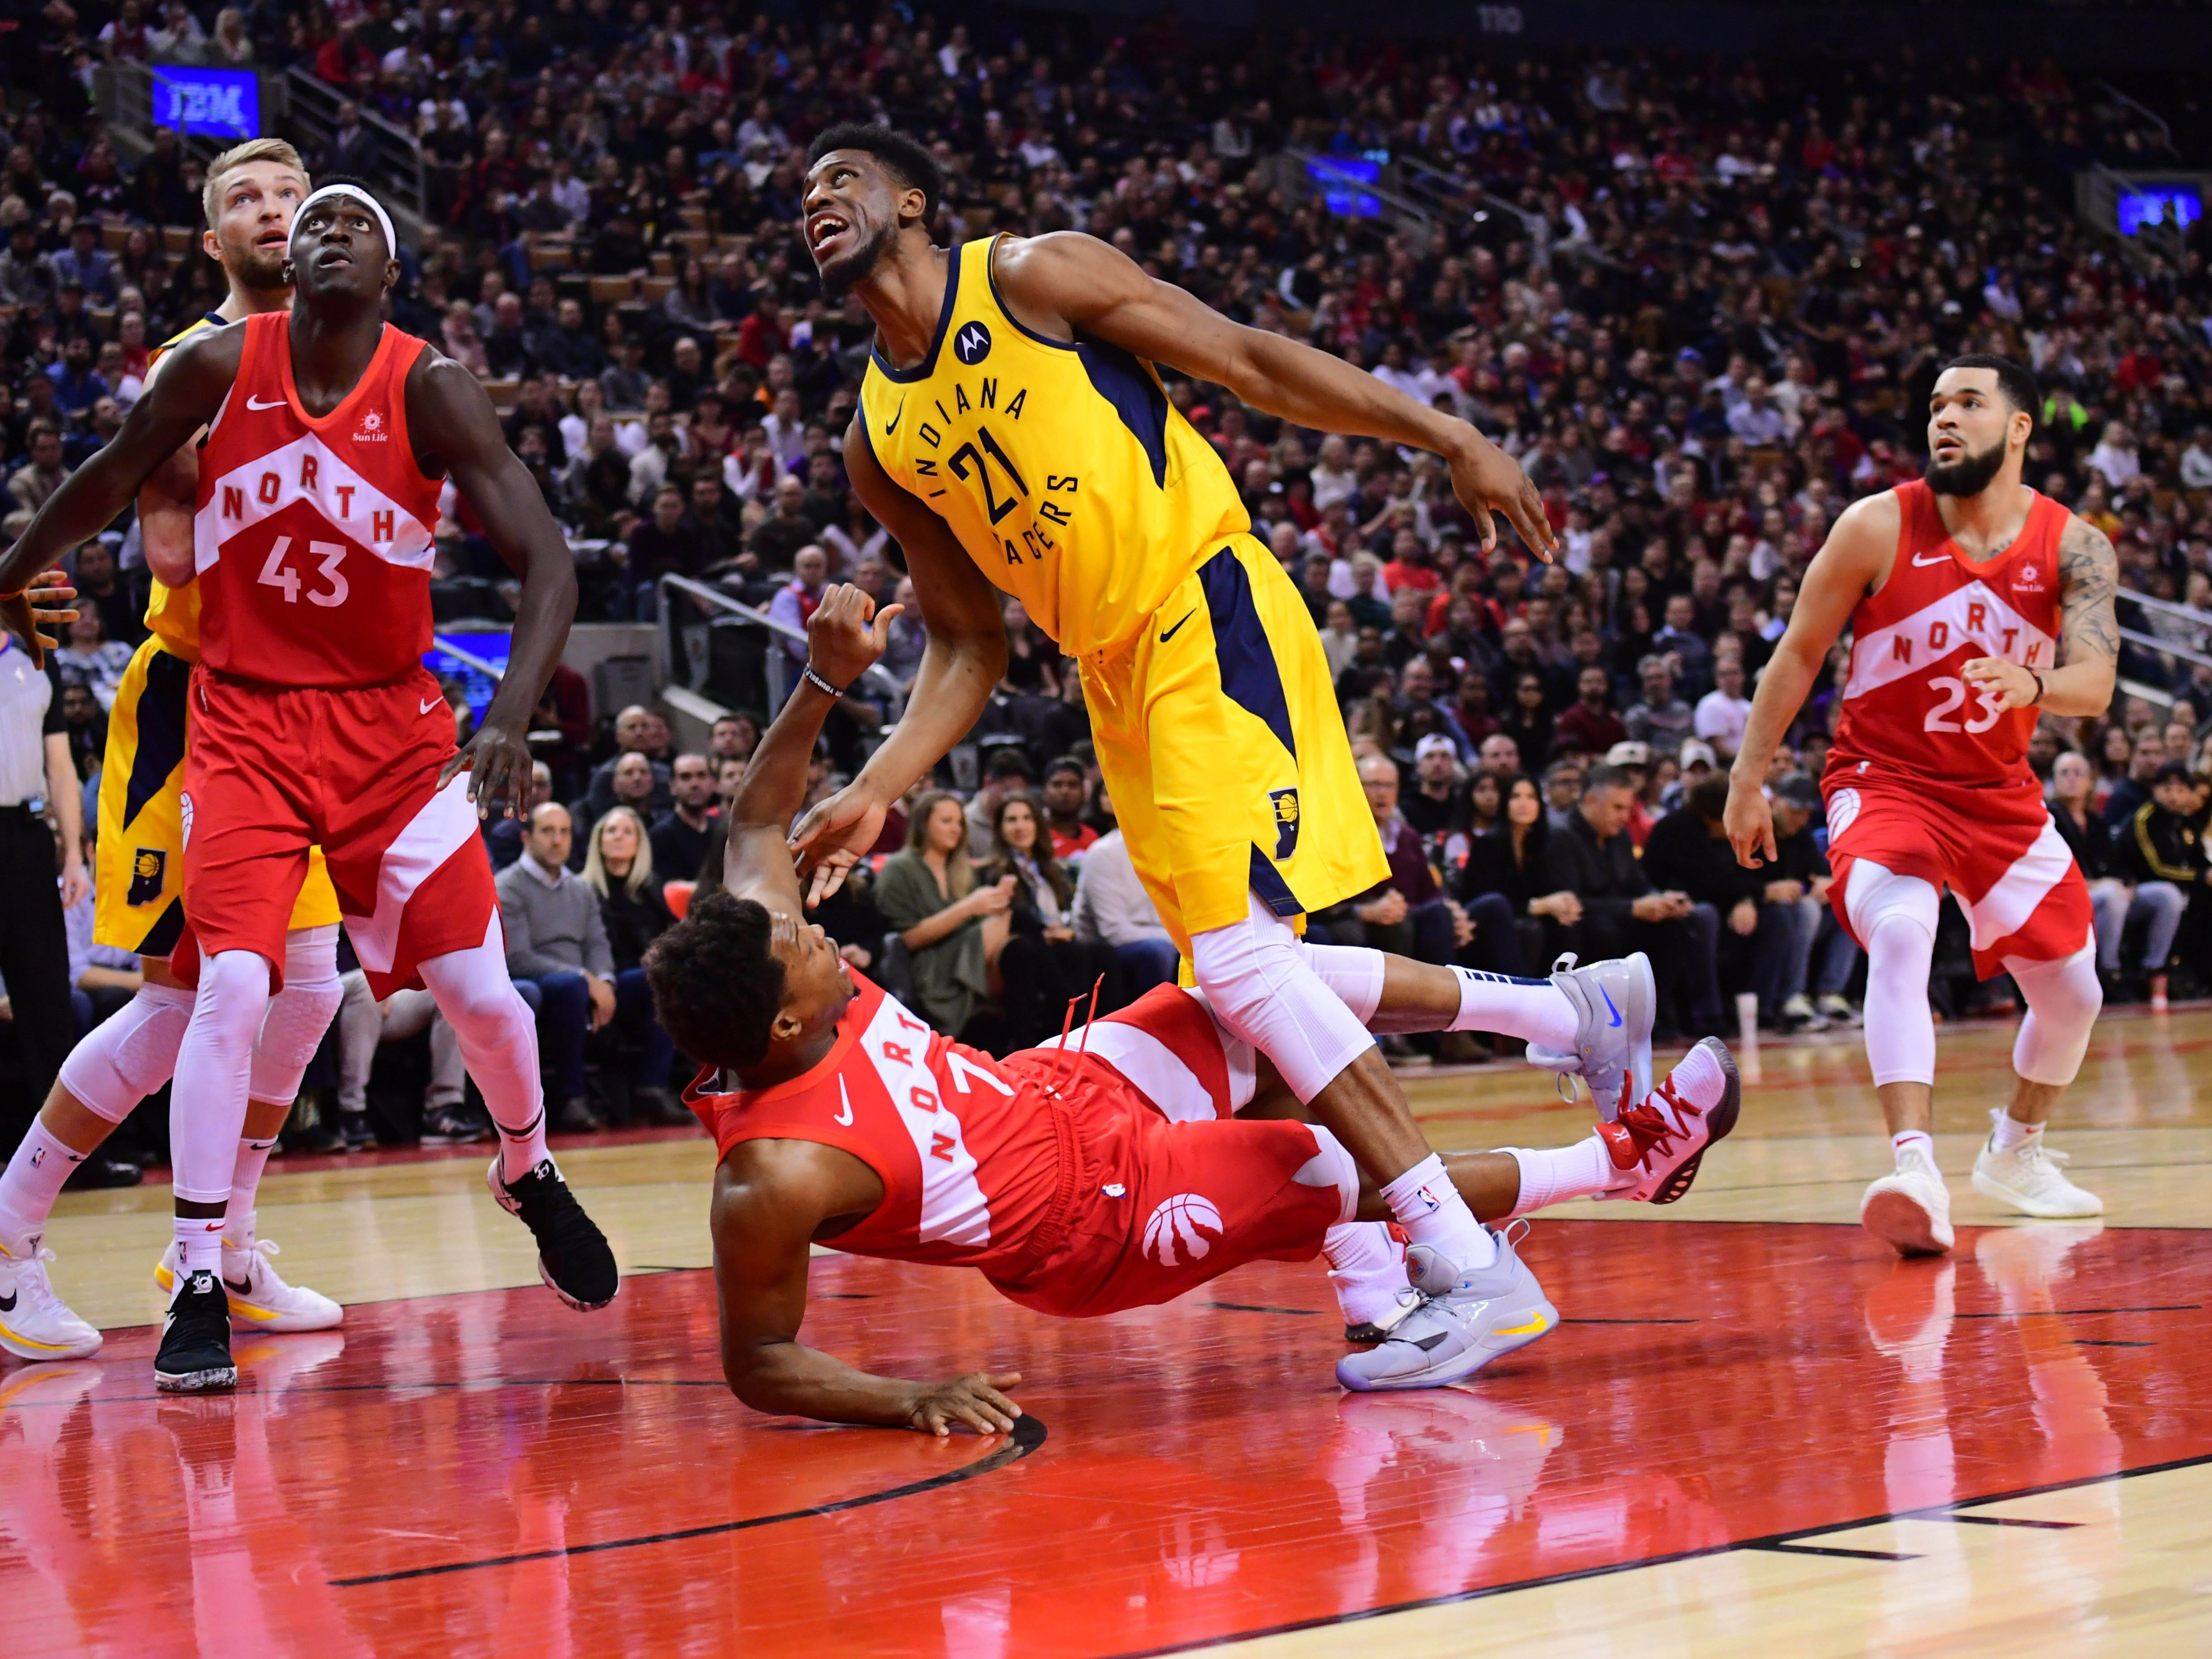 Jan 6, 2019; Toronto, Ontario, CAN; Indiana Pacers forward Thaddeus Young (21) battles with Toronto Raptors guard Kyle Lowry (7) during the first quarteragainst the Indiana Pacers at Scotiabank Arena.